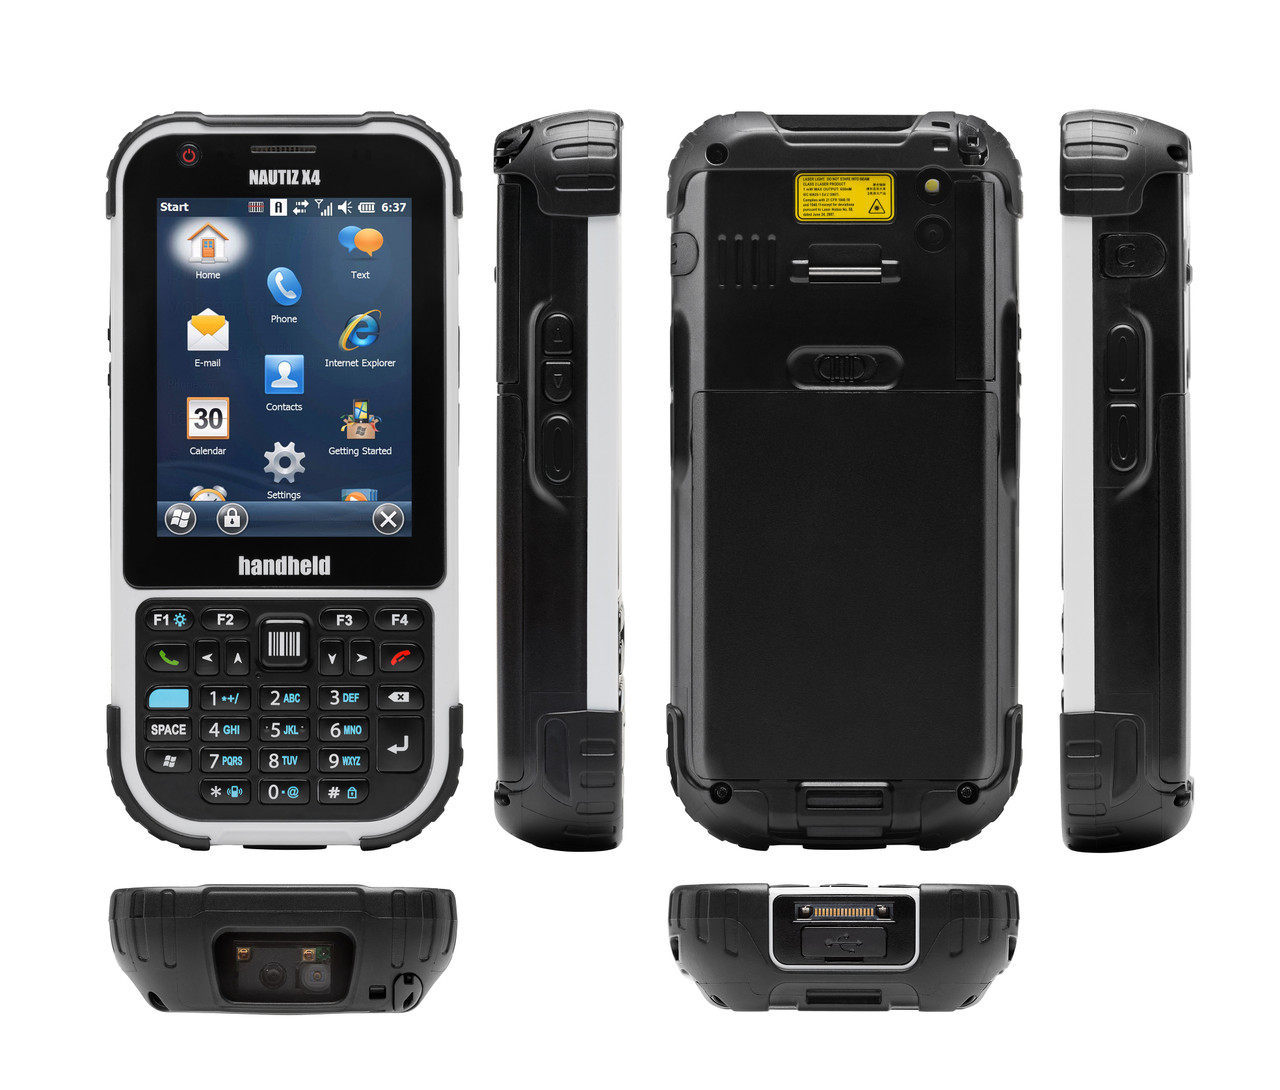 NAUTIZ ETICKET PRO II, Texas Instruments AM3715 1 GHz, 512 MB / 1 GB, Rear Cam, 2D Imager, Windows Embedded Handheld 6.5 / Android 4.2.2